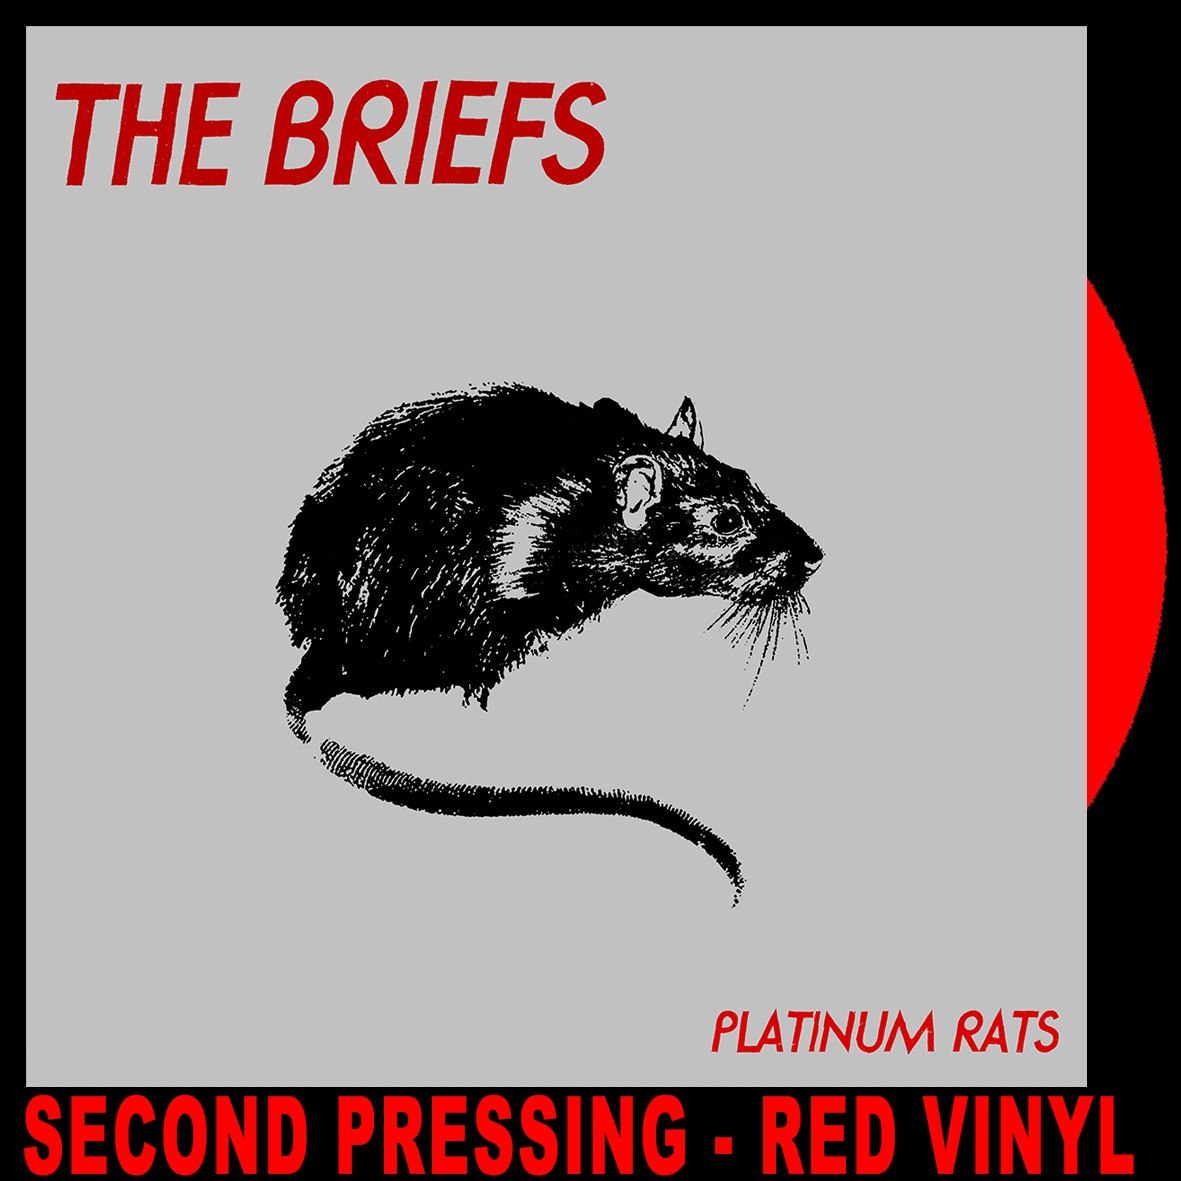 The Briefs - Platinum Rats (RED VINYL LP)